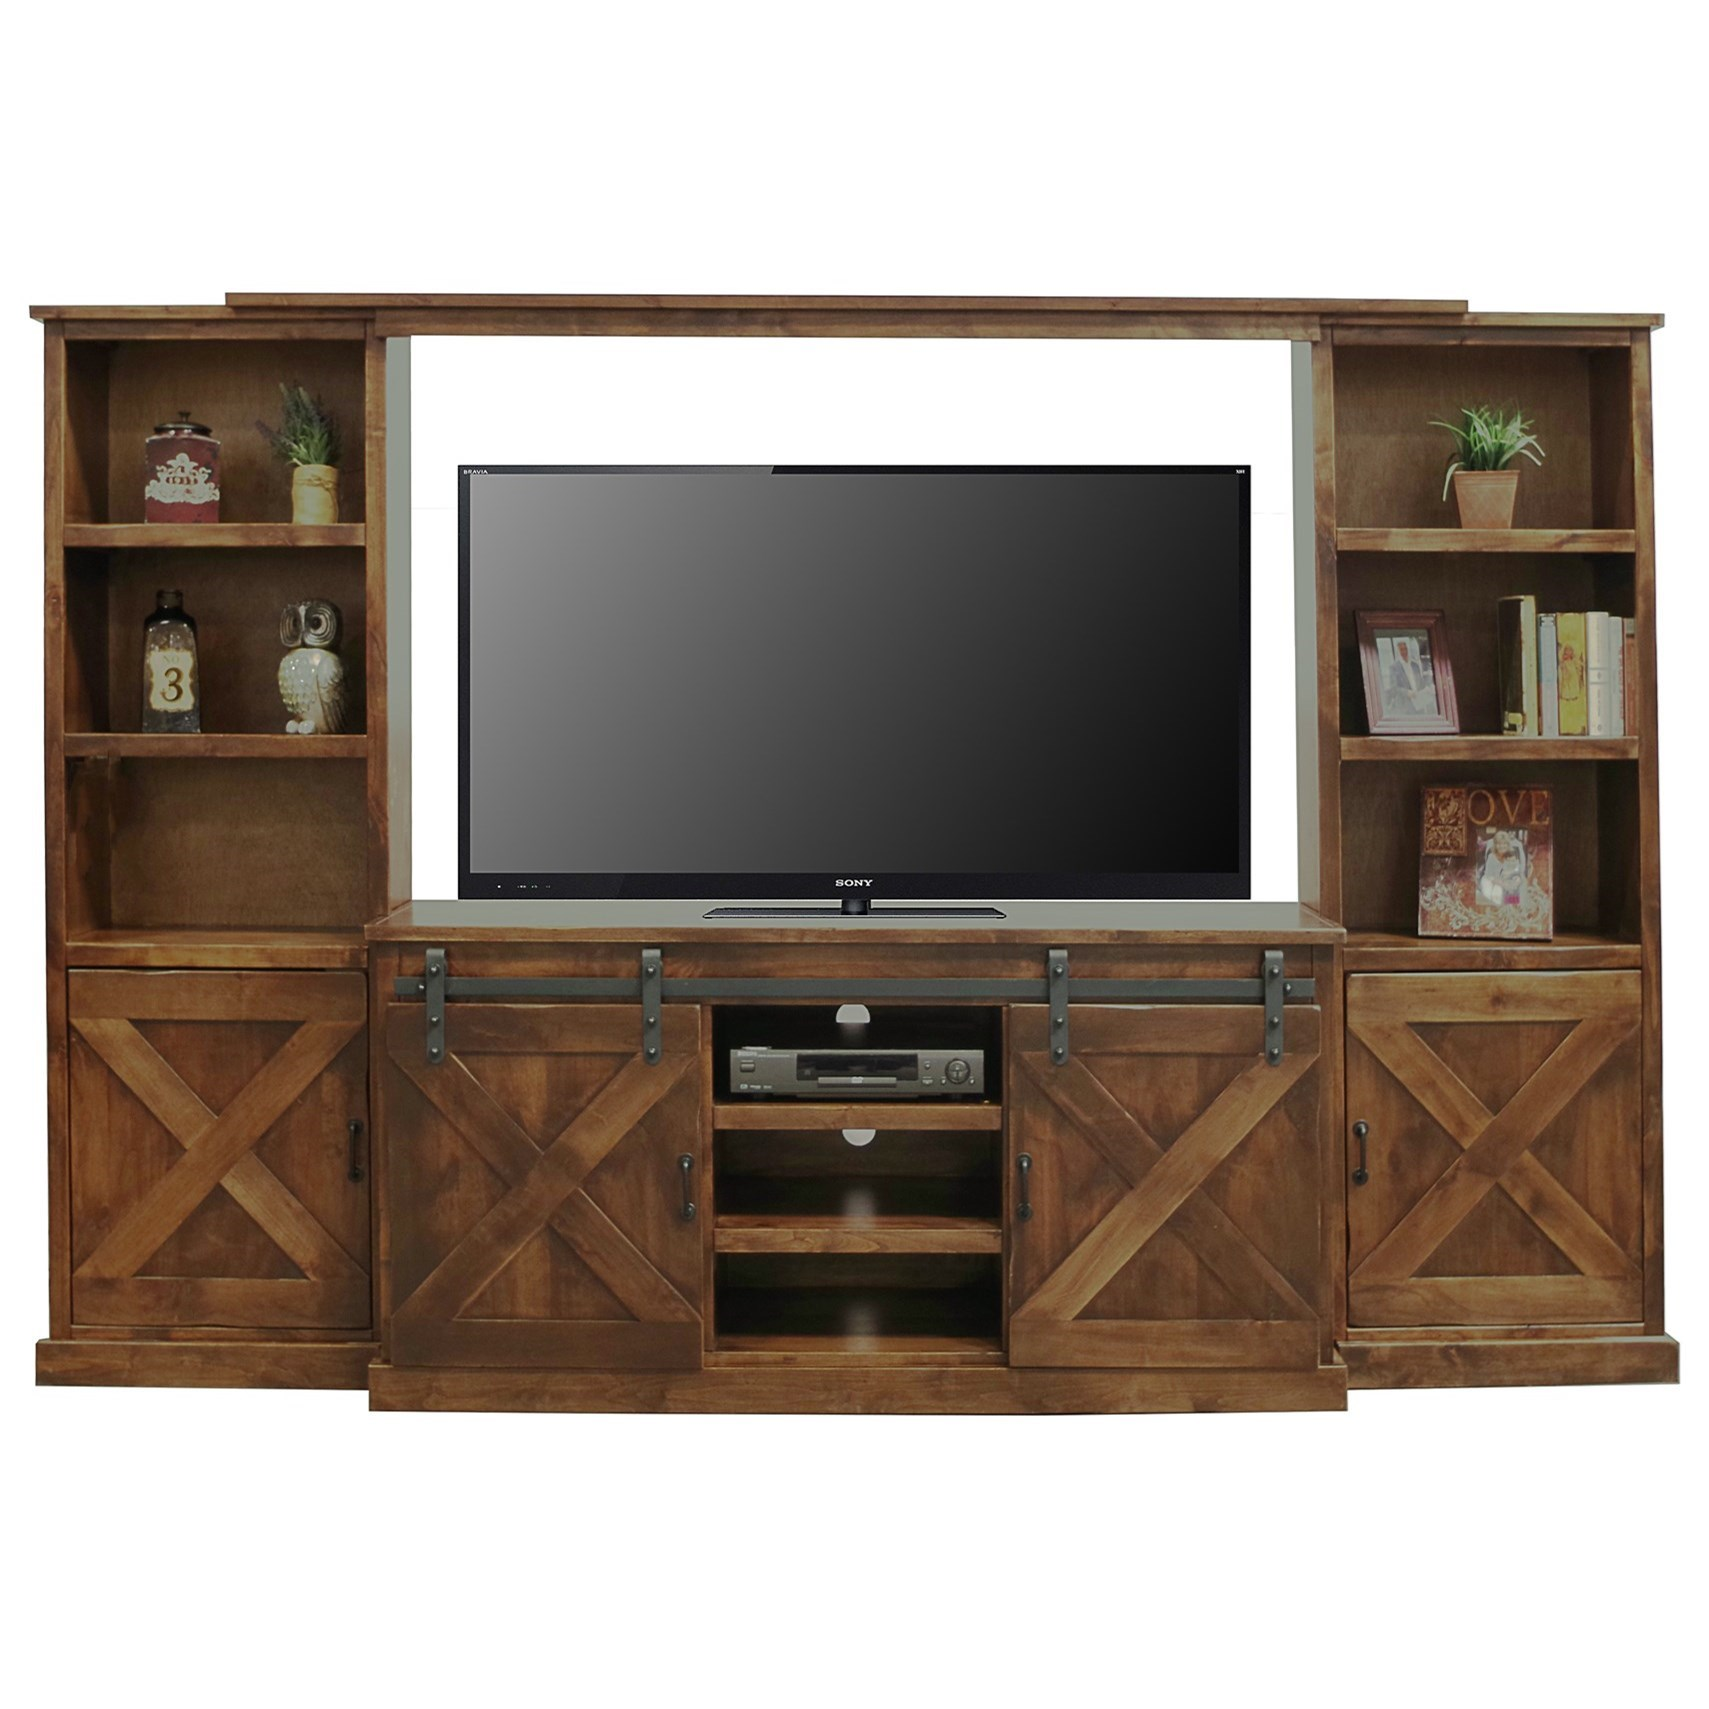 Farmhouse Entertainment Wall Unit by Legends Furniture at Smart Buy Furniture